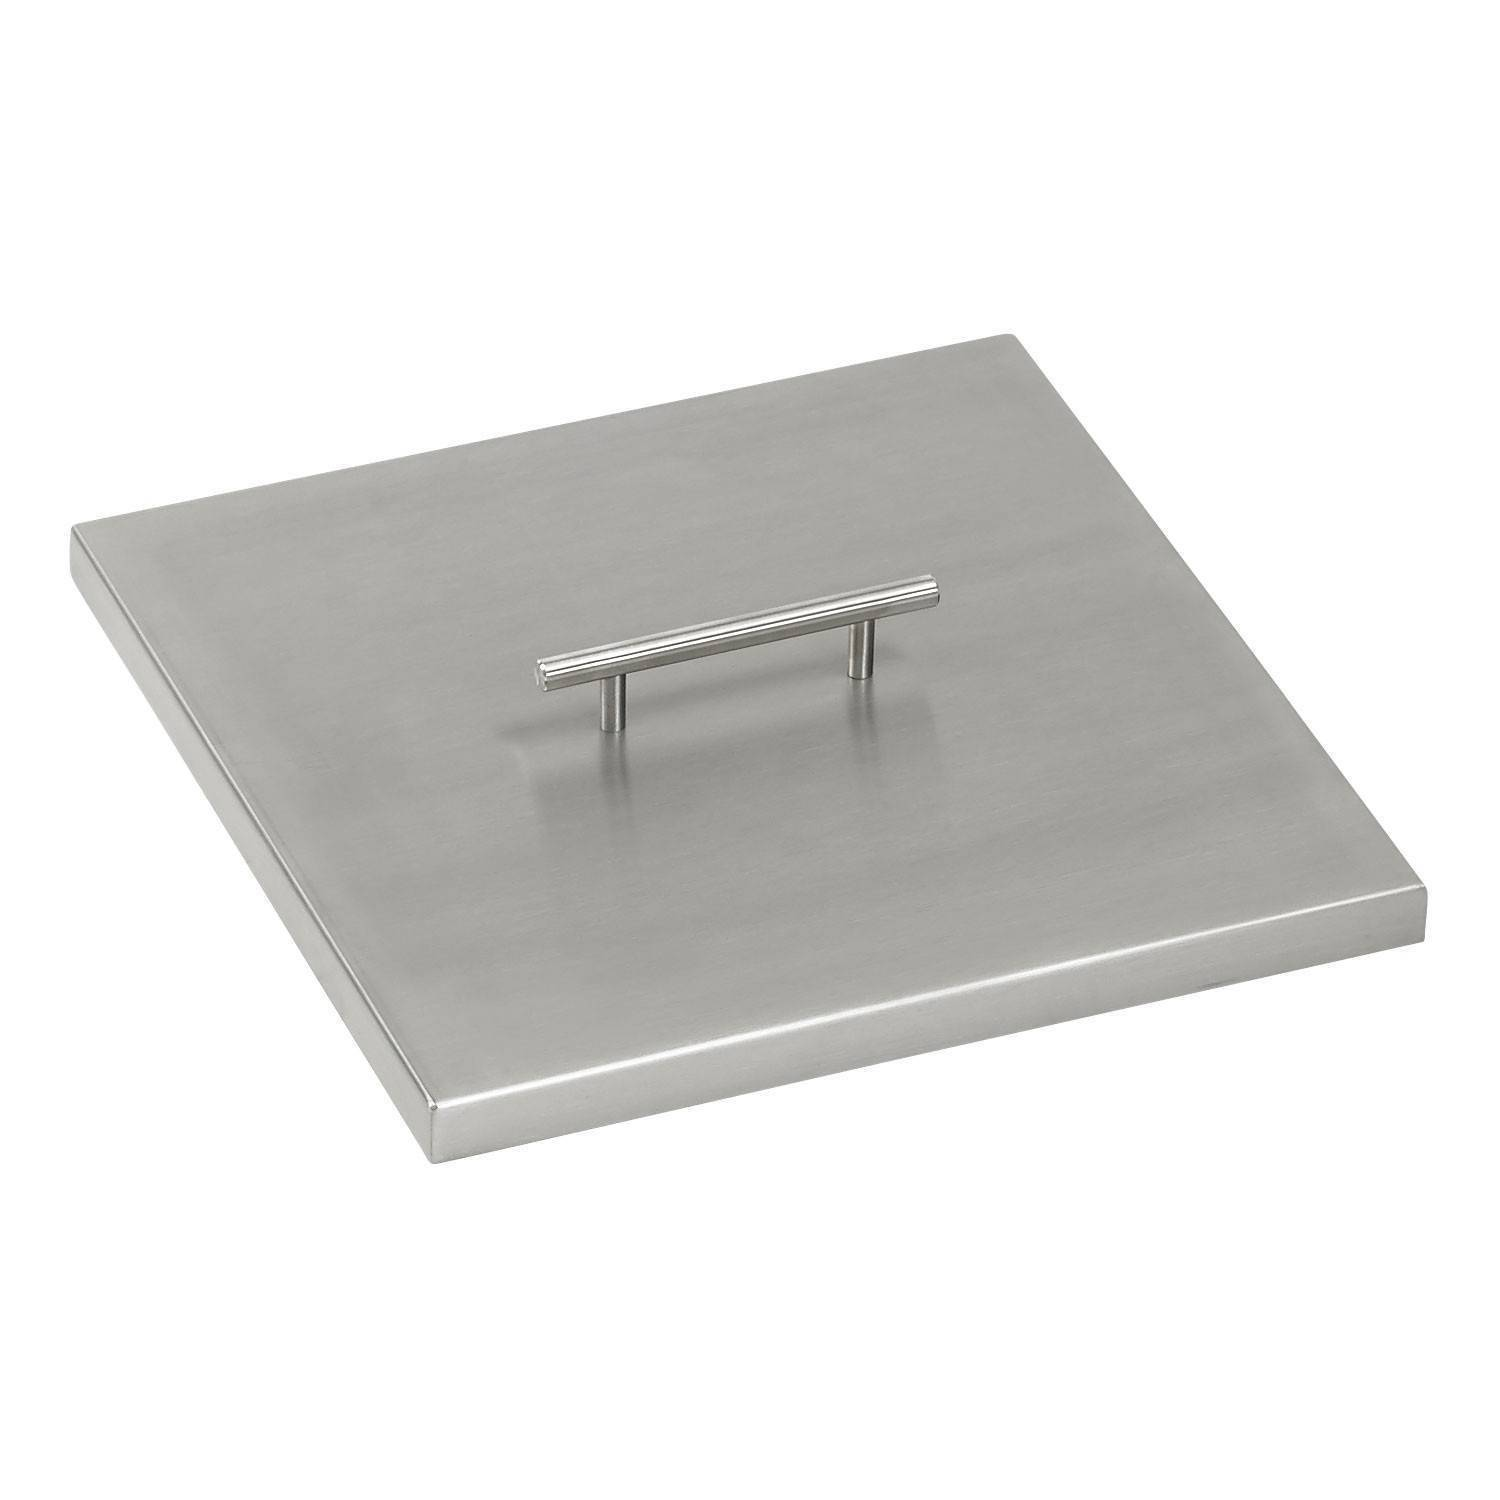 12 inch Stainless Steel Cover